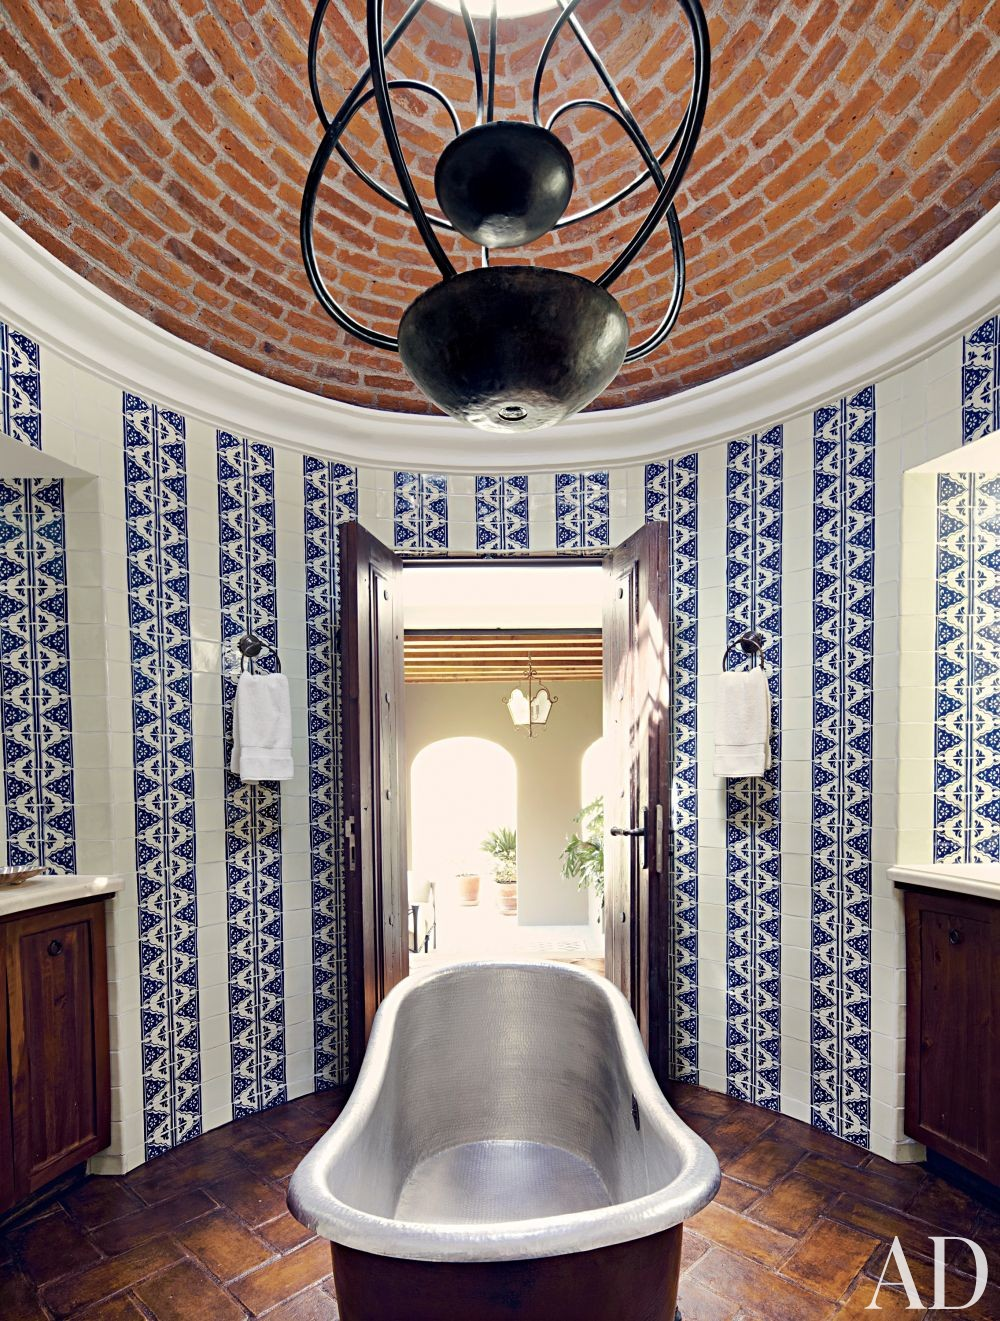 Exotic Bathroom by Fisher Weisman in San Miguel de Allende  Mexico. Exotic Bathroom by Fisher Weisman by Architectural Digest   AD